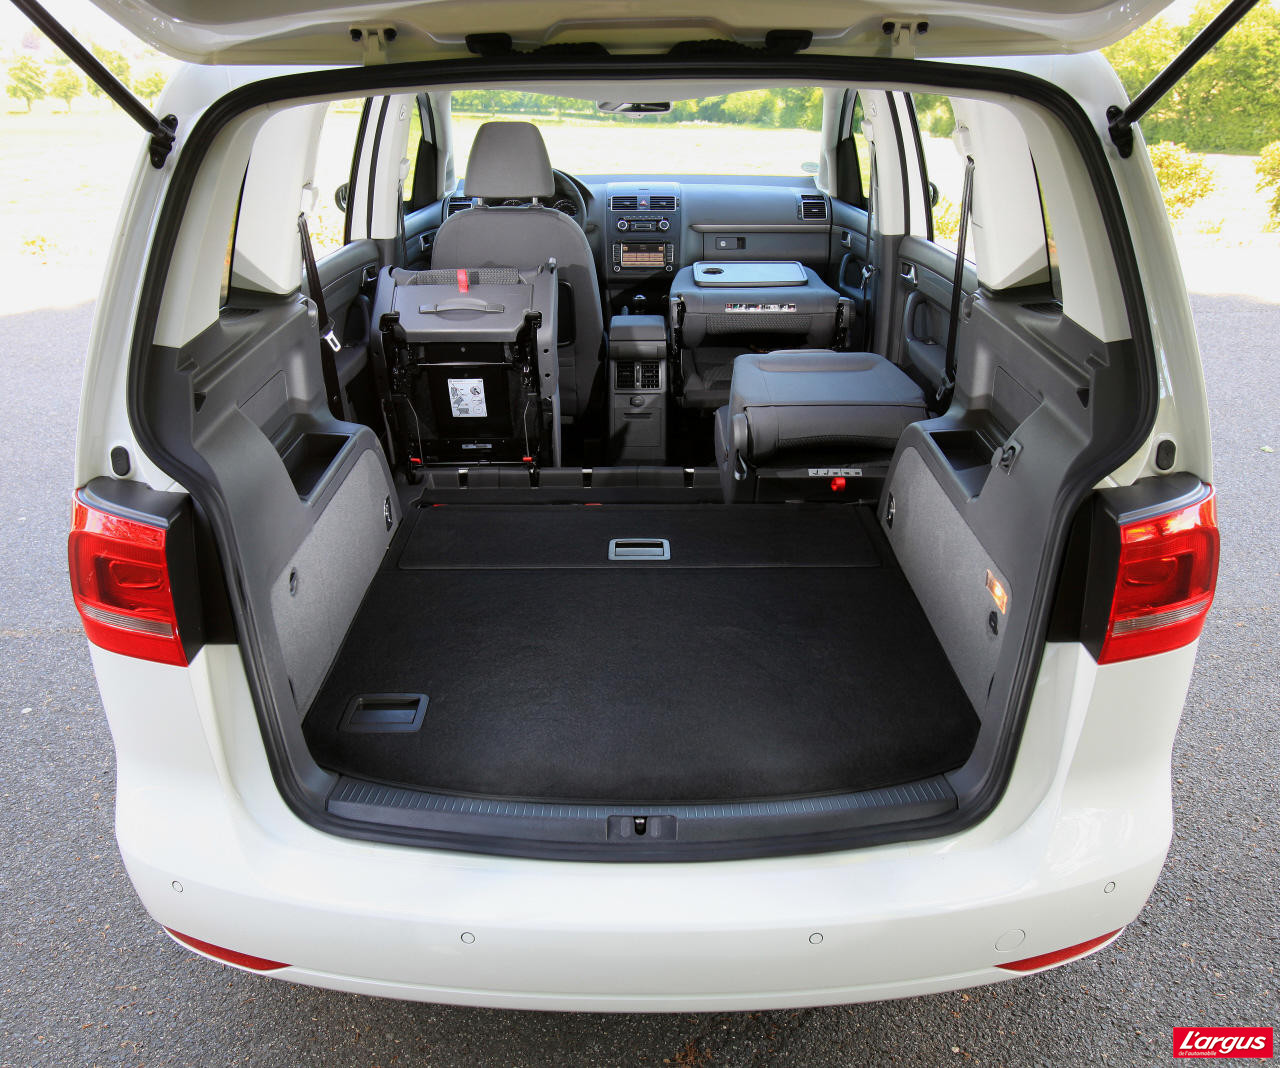 essai volkswagen touran 1 6 tdi 105 bluemotion photo 19 l 39 argus. Black Bedroom Furniture Sets. Home Design Ideas